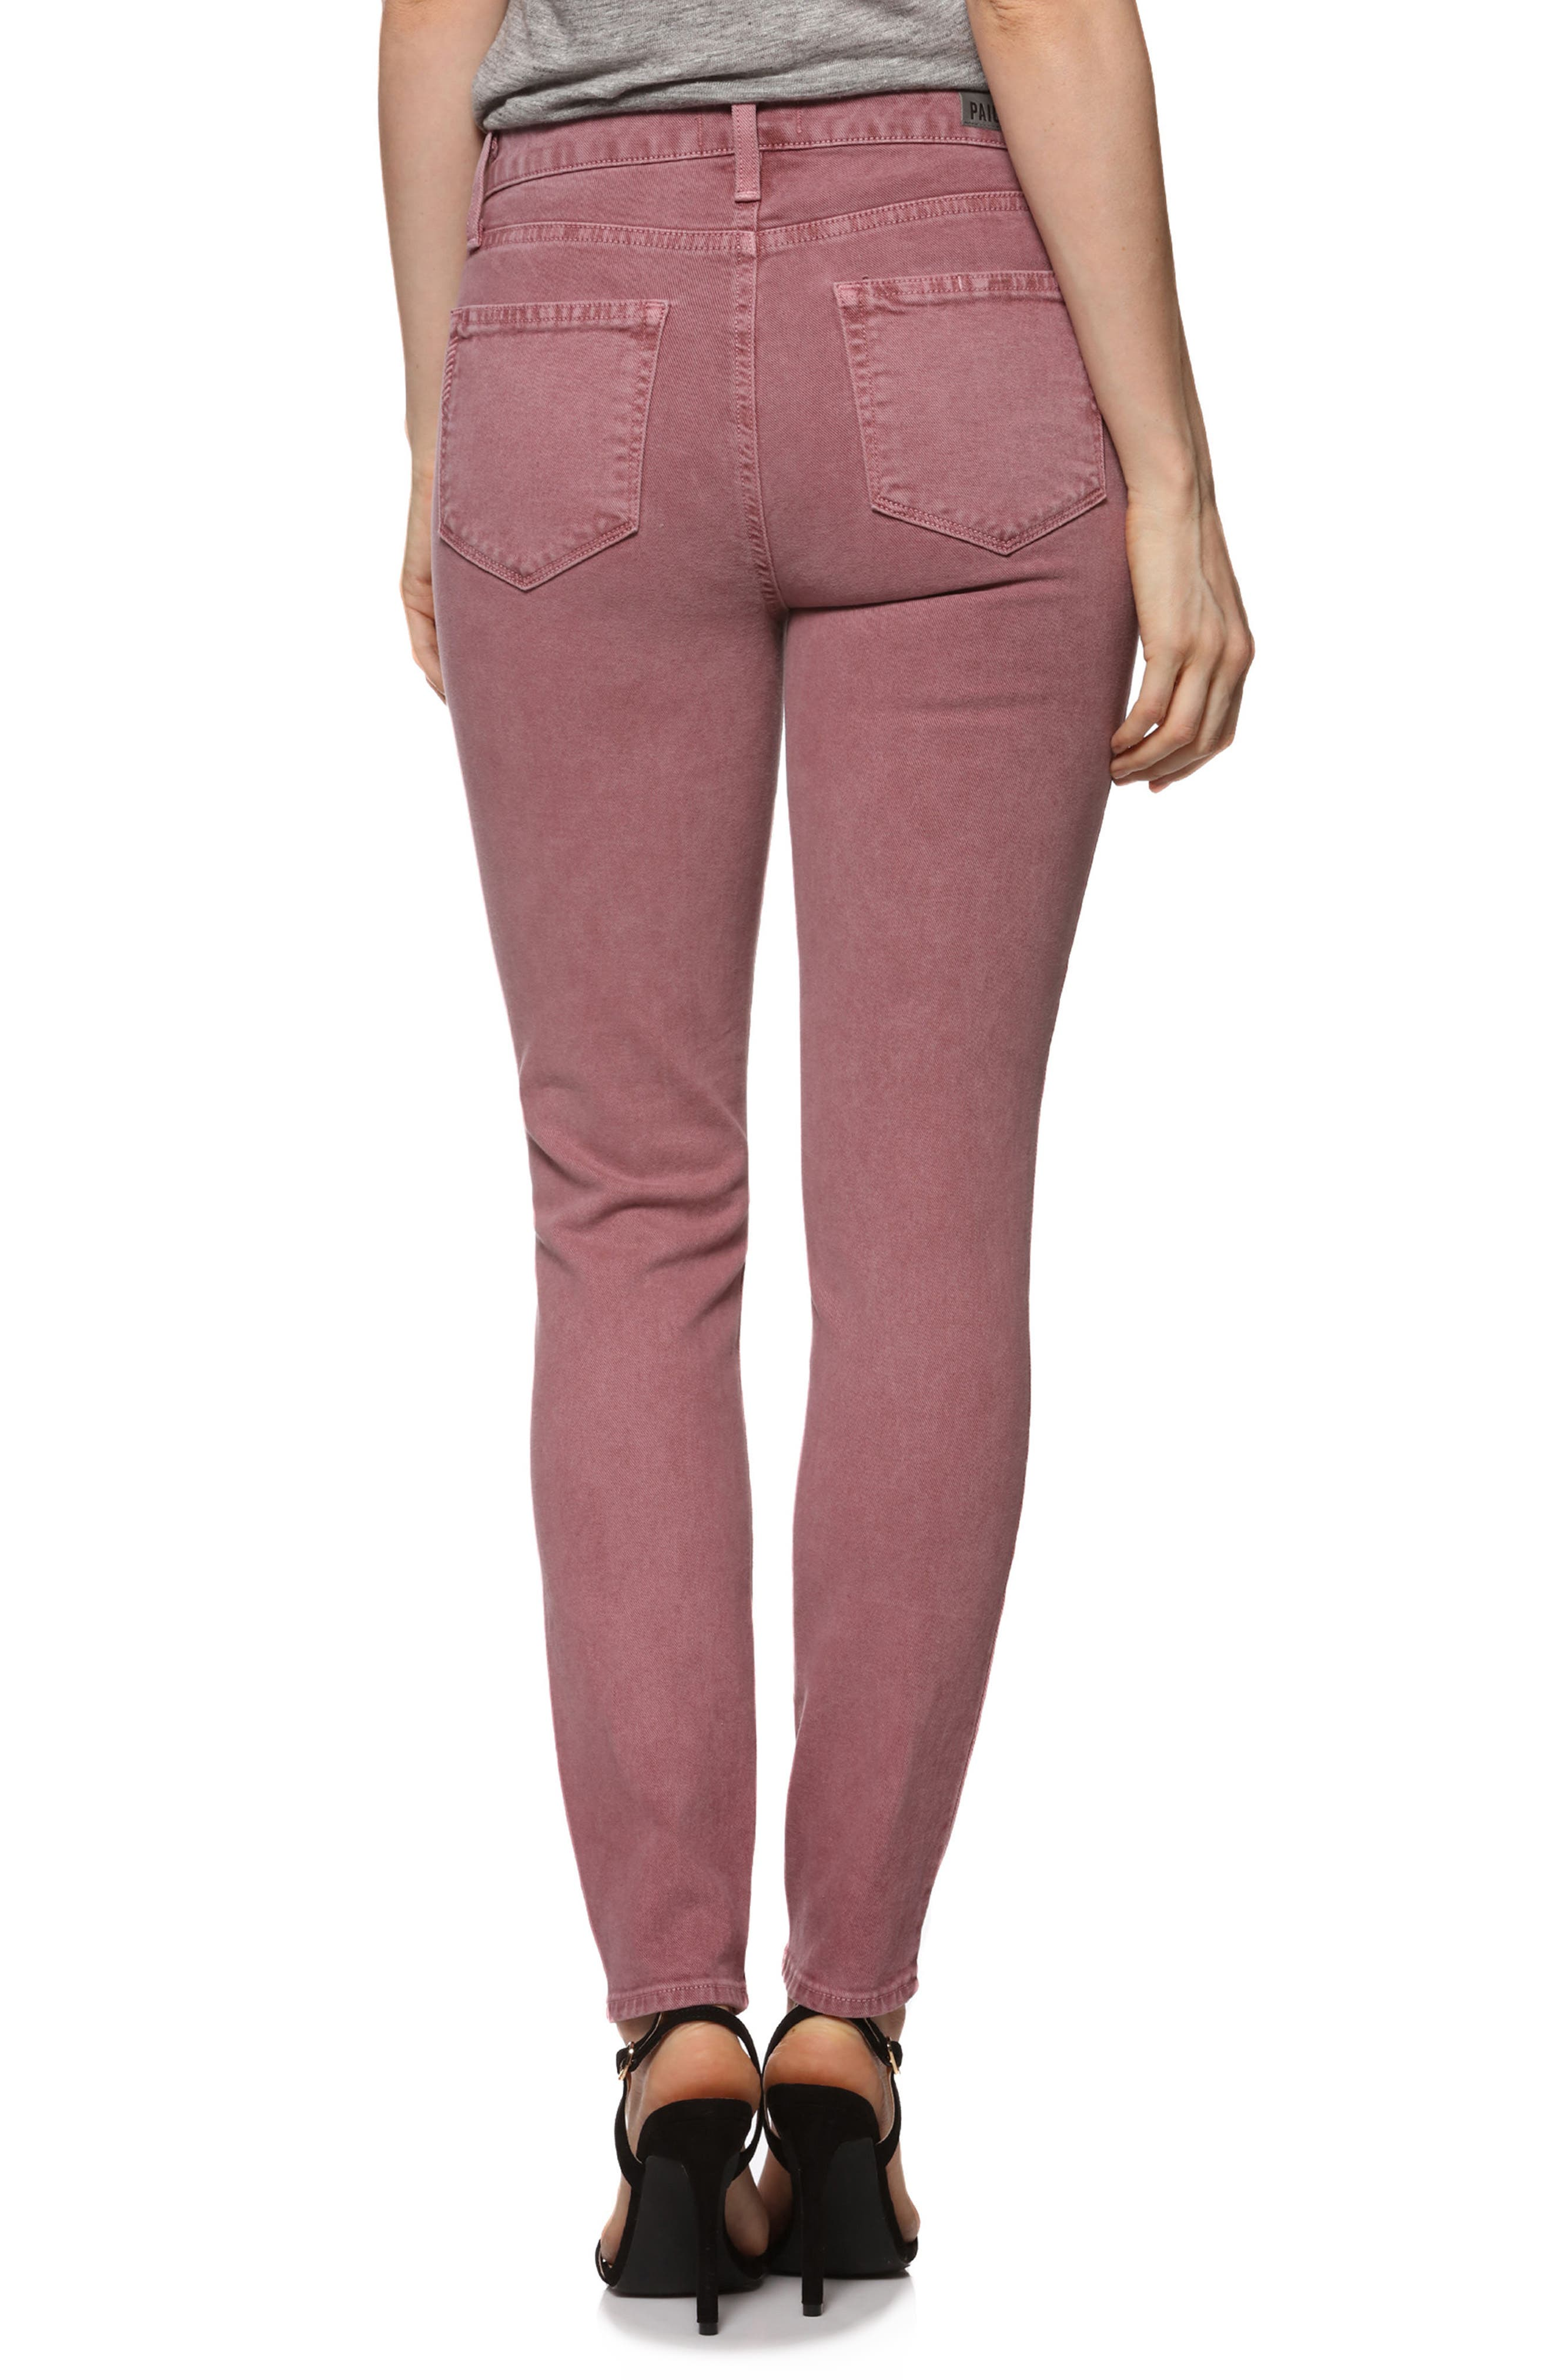 Hoxton High Waist Ankle Ultra Skinny Jeans,                             Alternate thumbnail 2, color,                             650